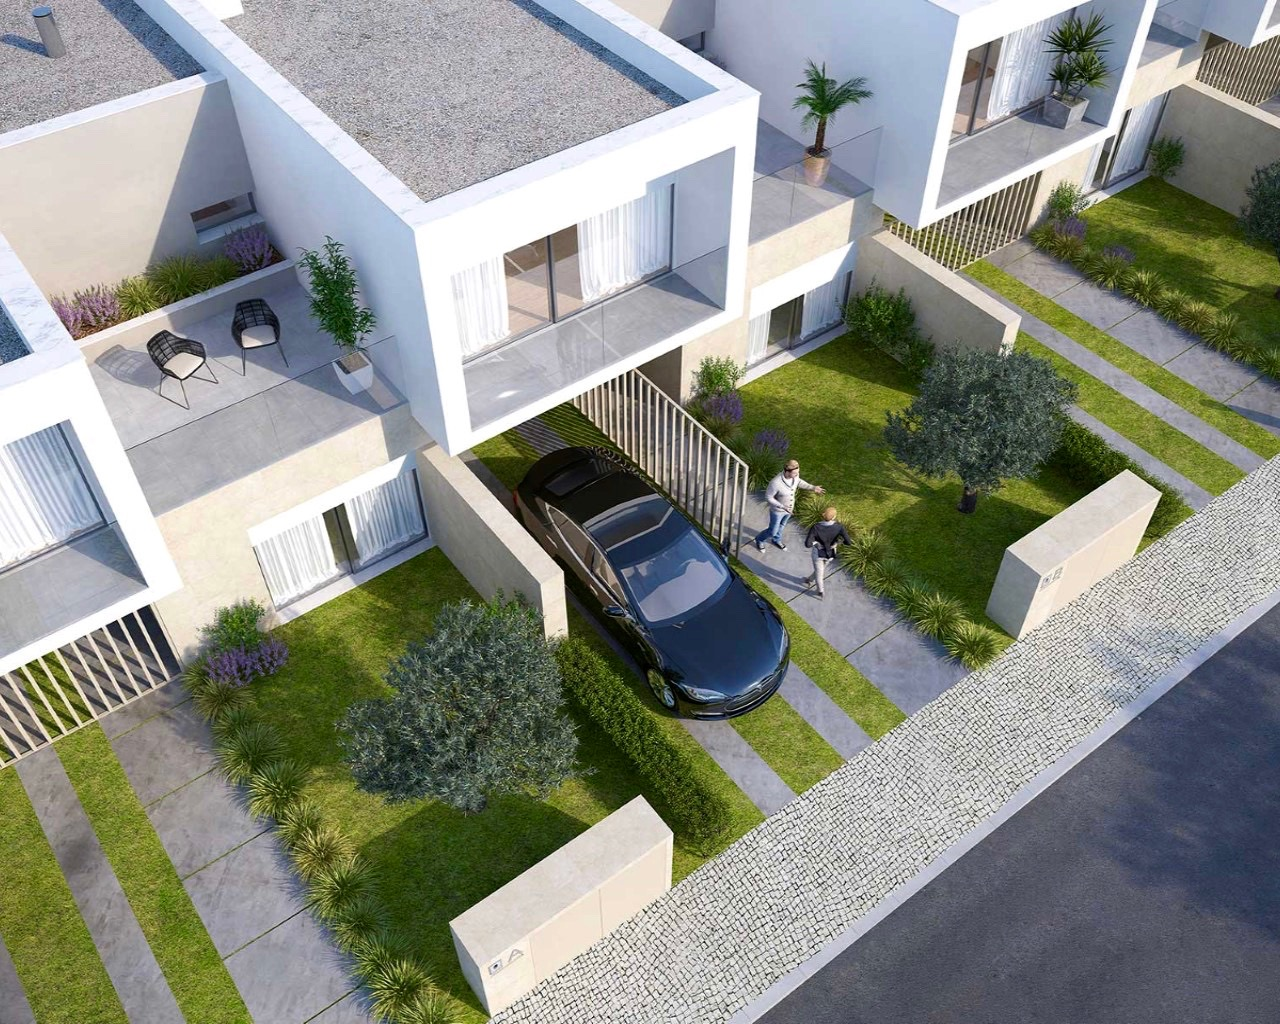 Modern 3 bedroom townhouse in Ferragudo  - House in closed condominium with pools Beautiful contemporary 3 bedroom house